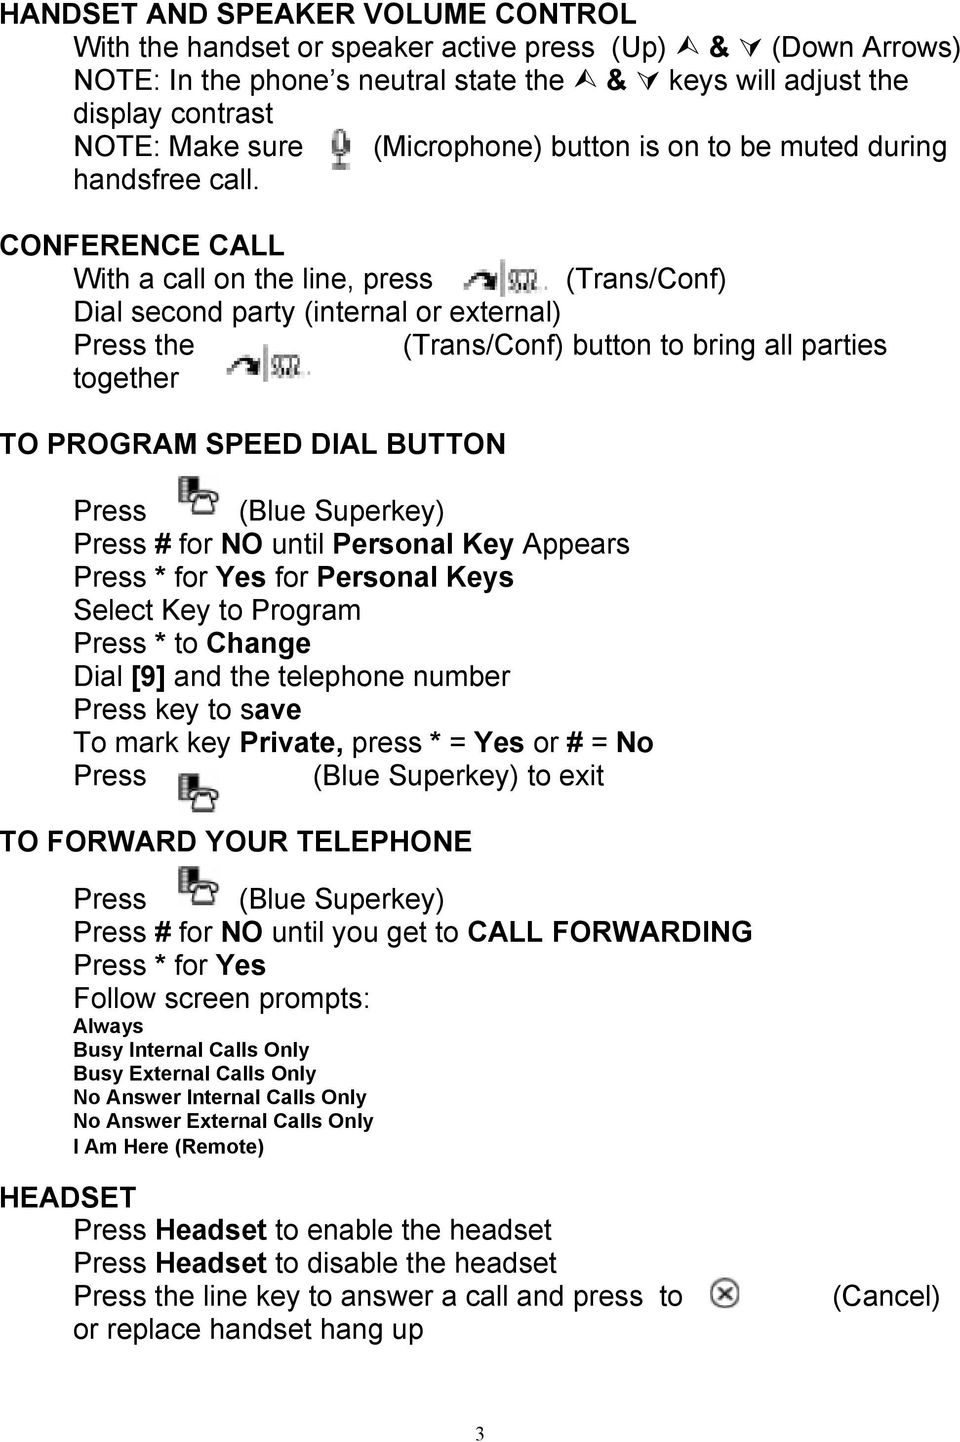 CONFERENCE CALL With a call on the line, press (Trans/Conf) Dial second party (internal or external) Press the (Trans/Conf) button to bring all parties together TO PROGRAM SPEED DIAL BUTTON Press